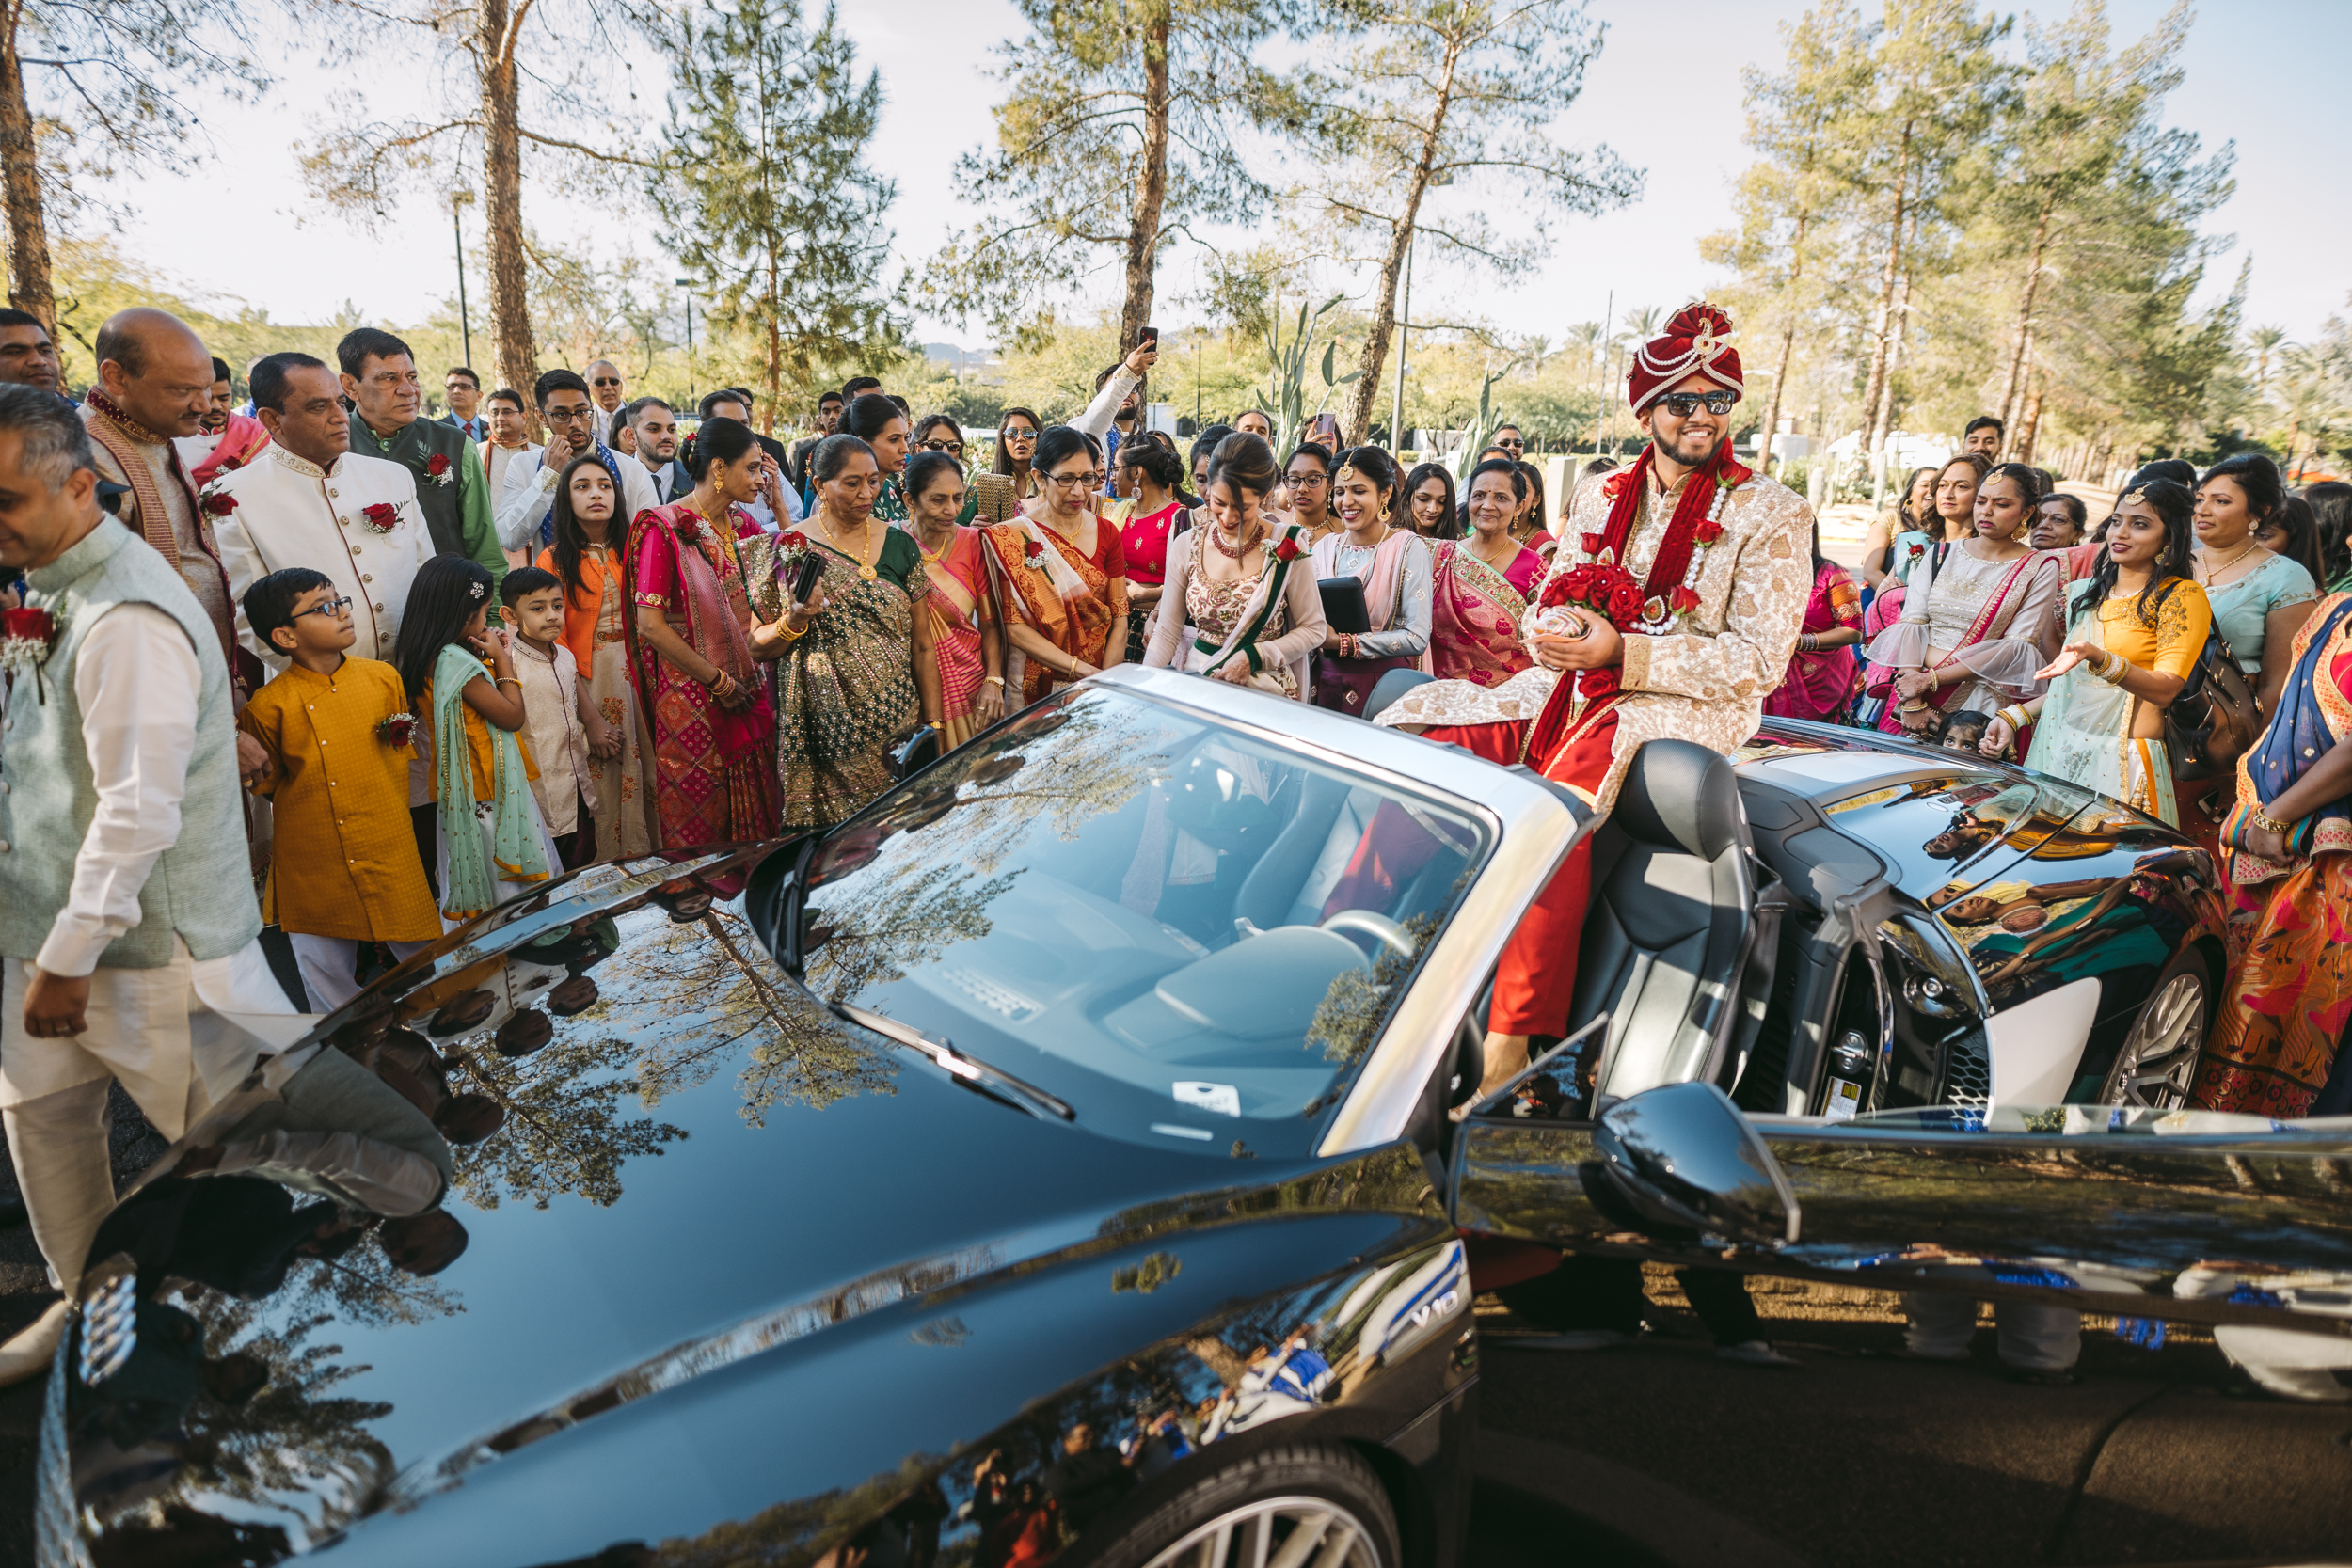 Baraat Indian Wedding